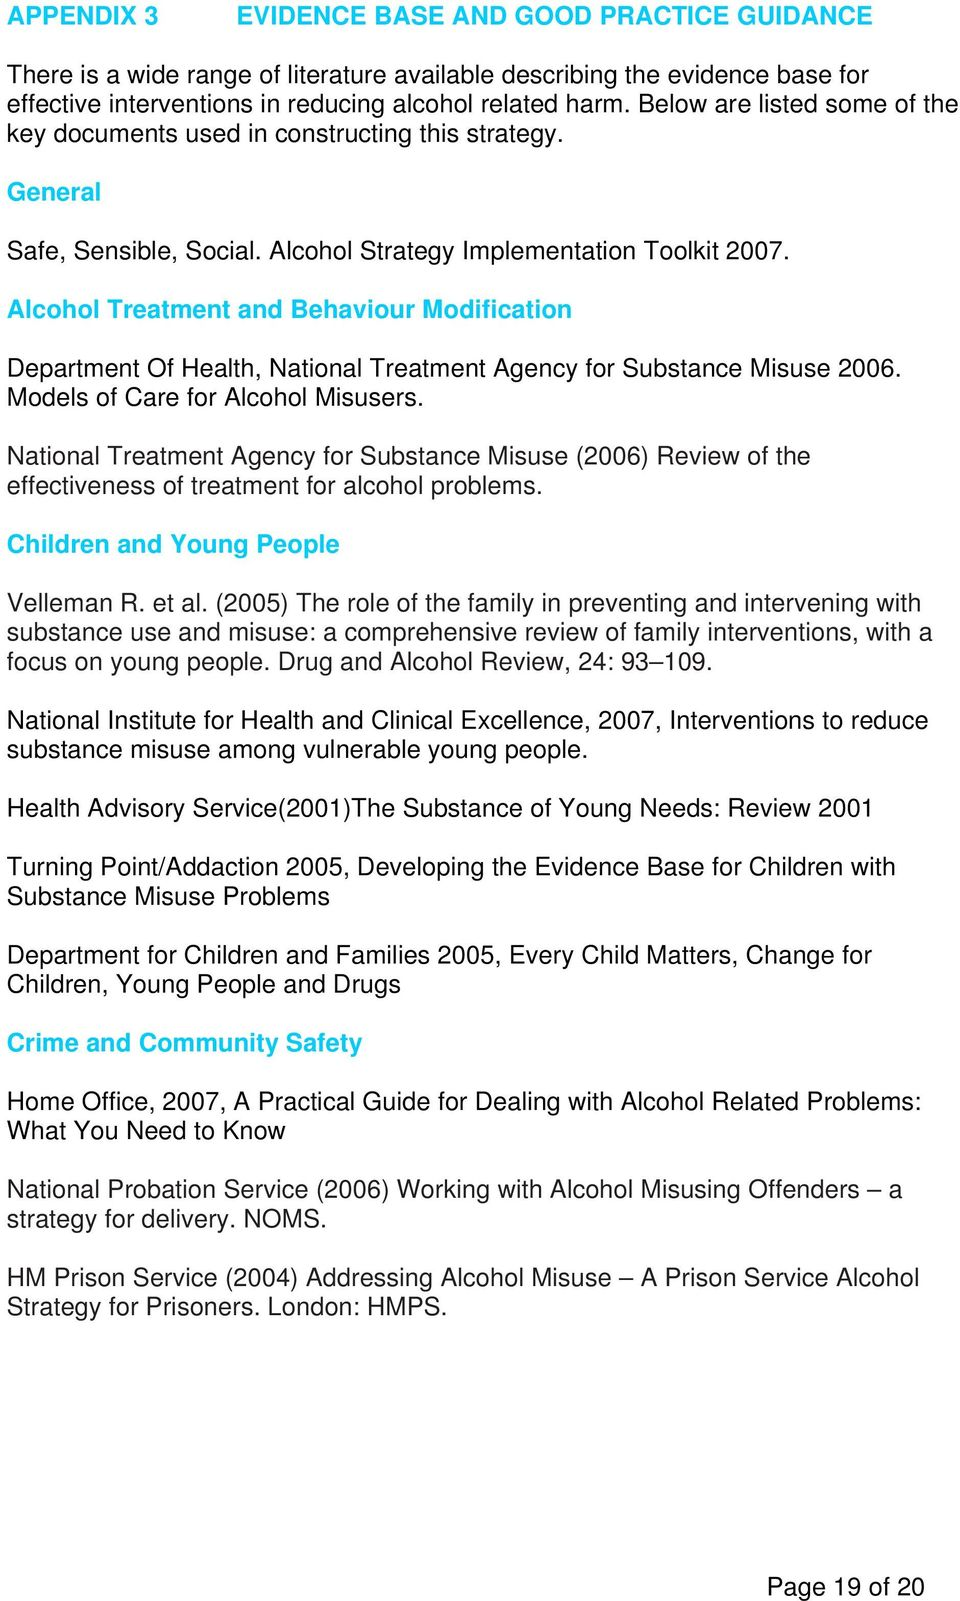 Alcohol Treatment and Behaviour Modification Department Of Health, National Treatment Agency for Substance Misuse 2006. Models of Care for Alcohol Misusers.